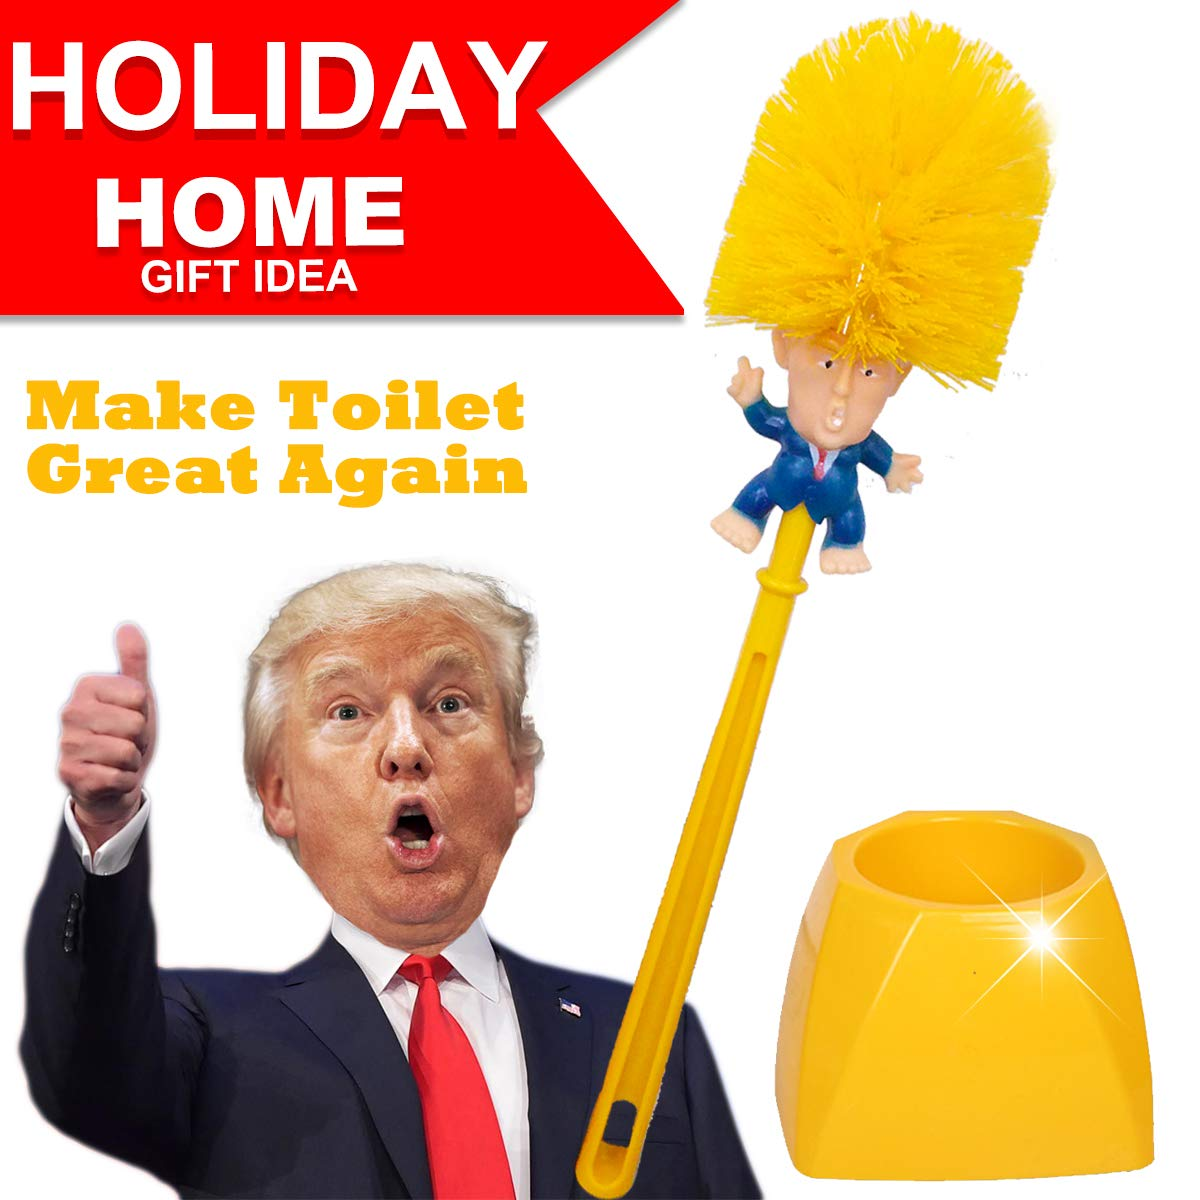 Donald Trump Toilet Brush Cleaner Scrubber Set Funny Trump Toilet Bowl Brush and Holder for Bathroom Storage Non-Skid Base Sturdy Deep Cleaning Make Toilet Great Again(Brush+Base) by Great Home